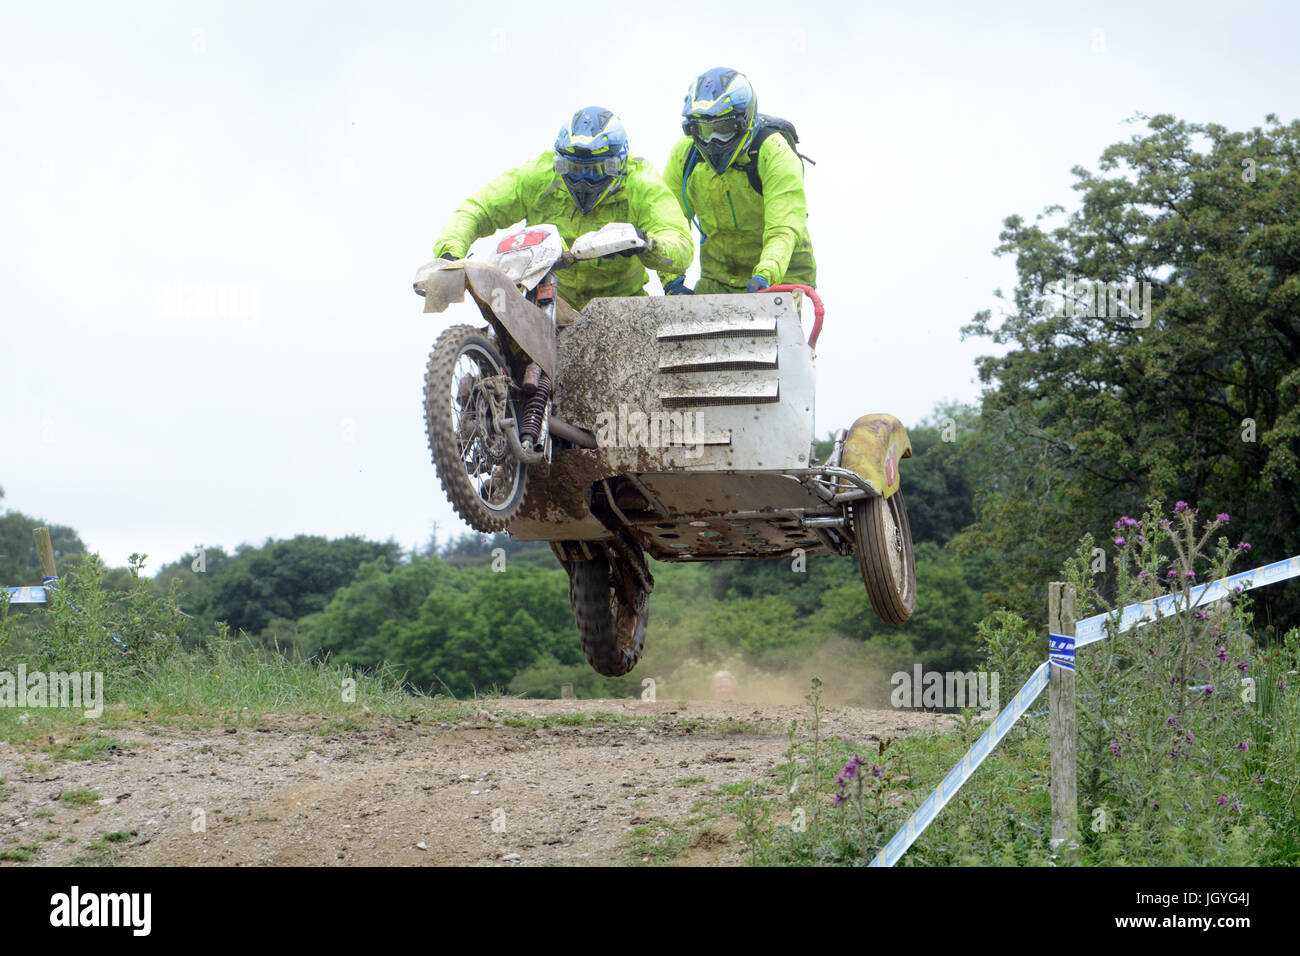 Paul Pelling and Chris Pannell of Guildford competing in the Sidecar championship of the Welsh 2 Day Enduro at llandrindod - Stock Image